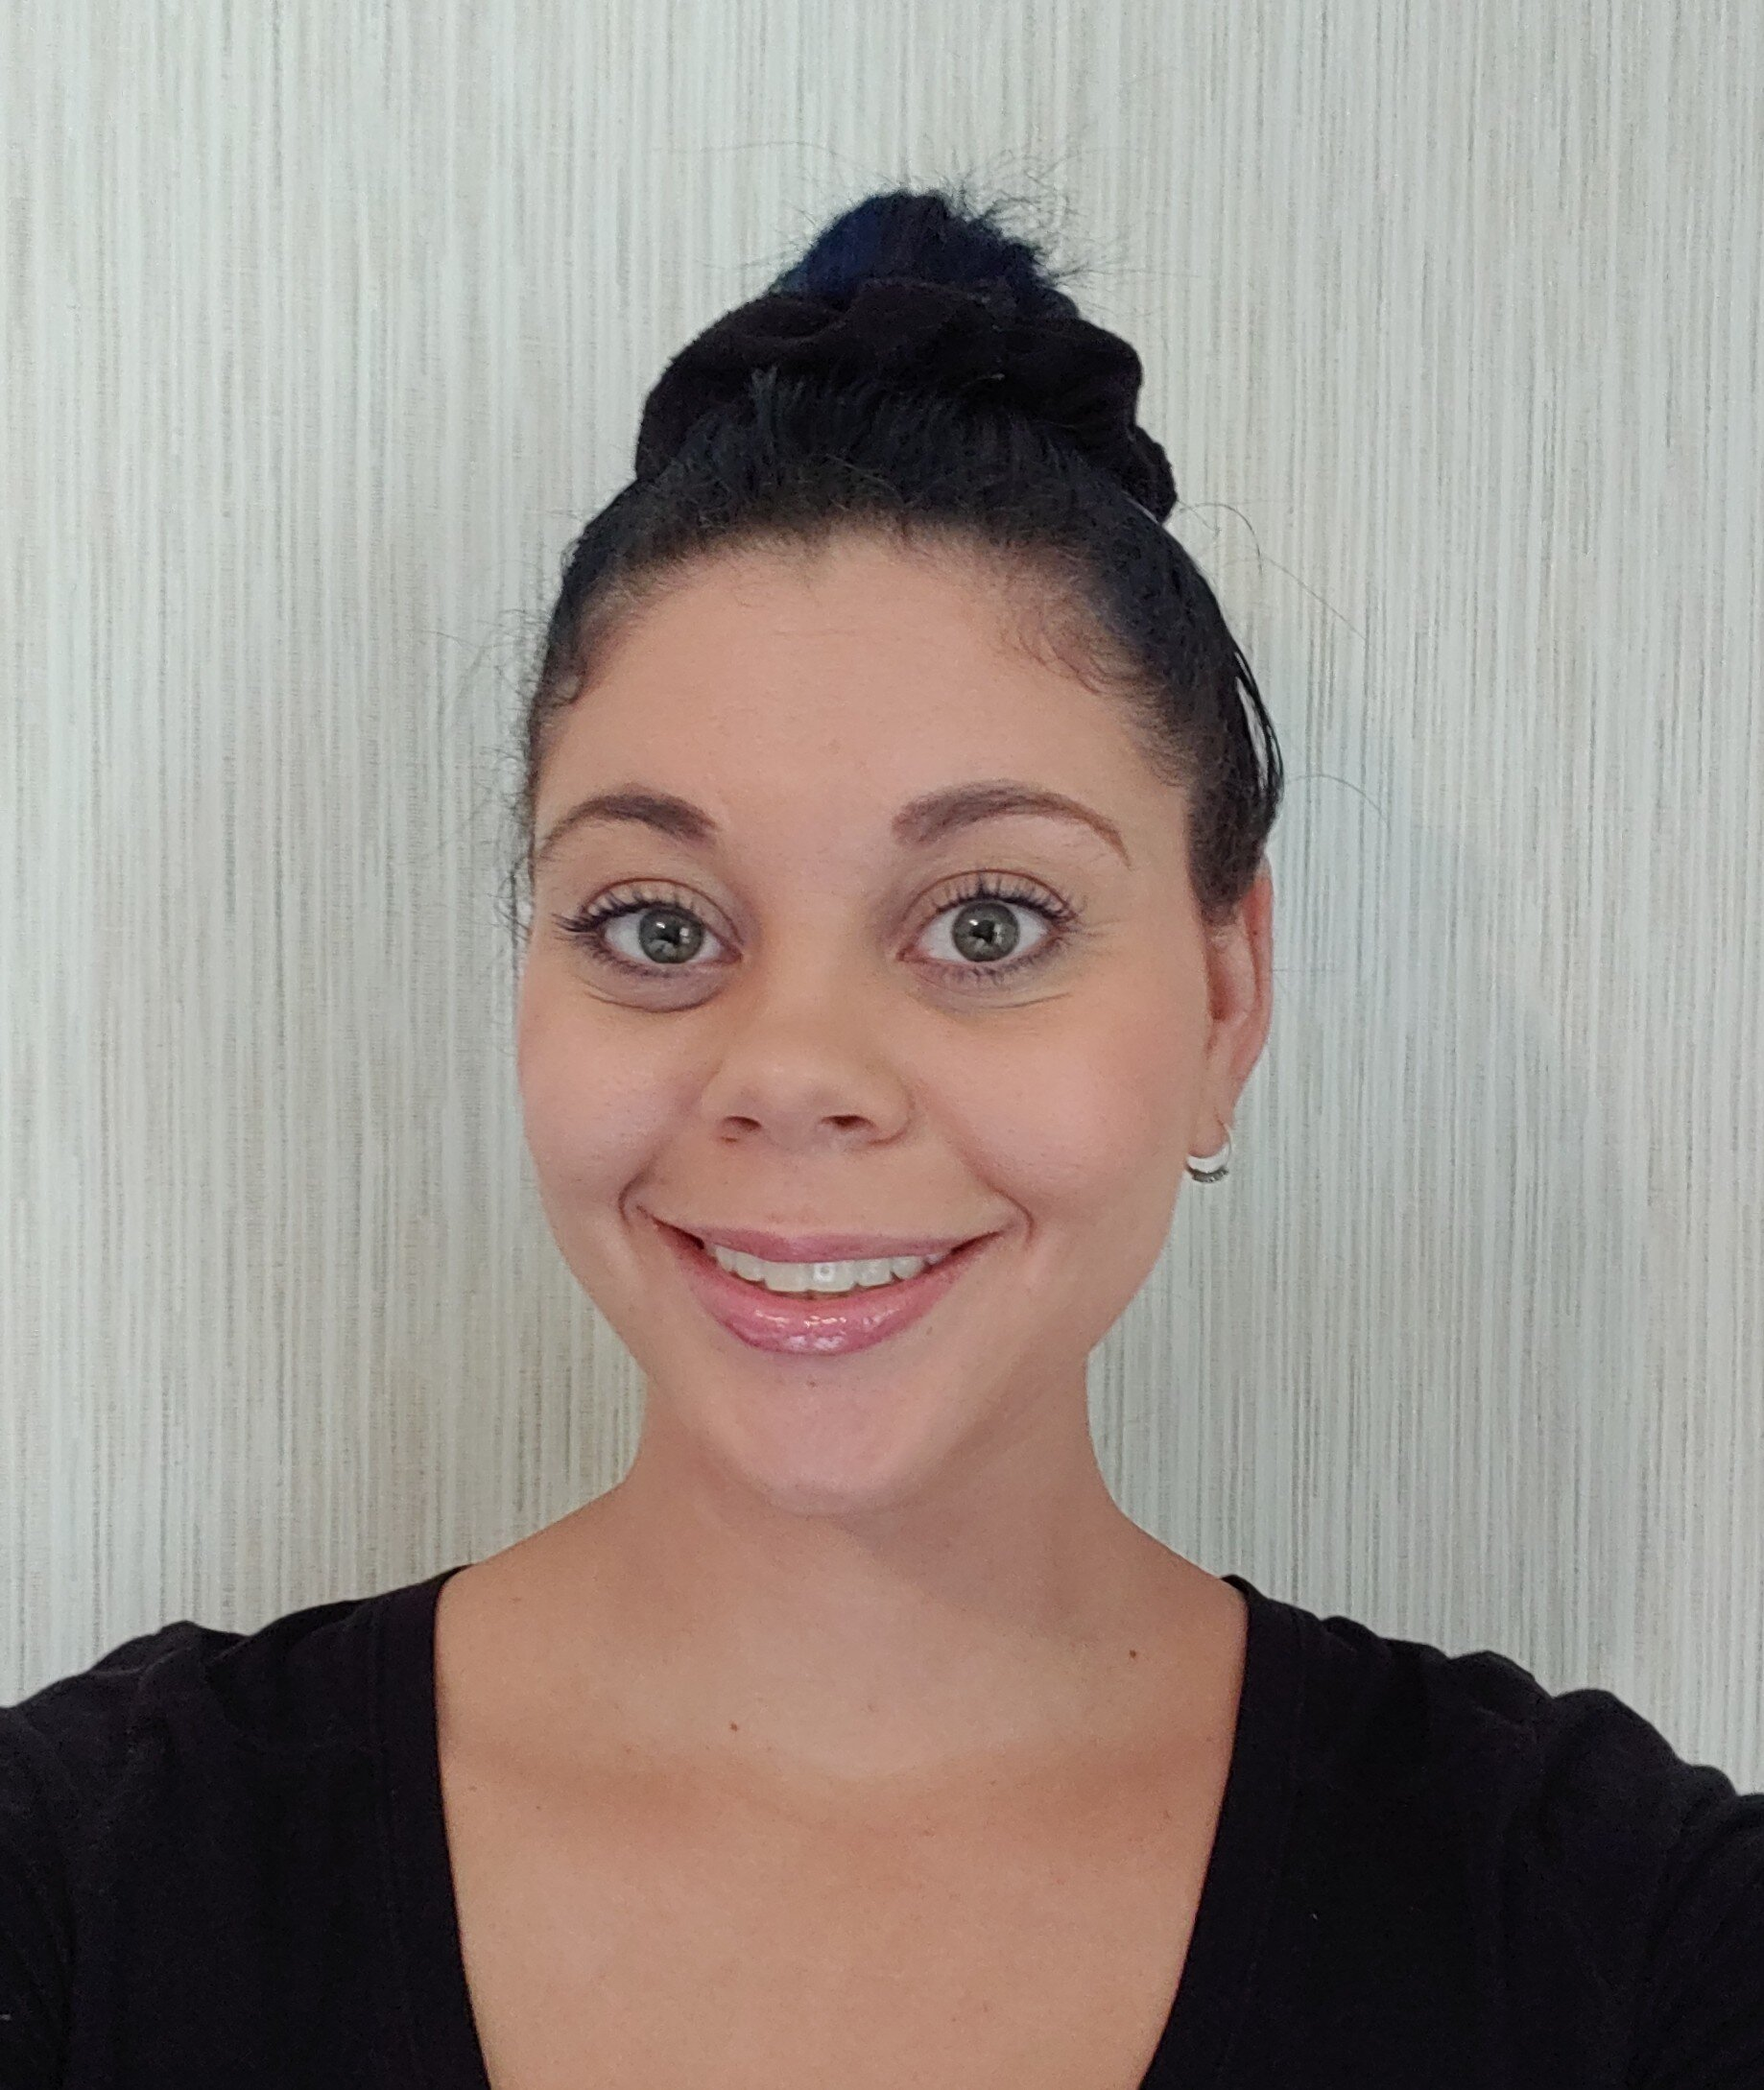 Jocelyn French - Licensed EstheticianJocelyn graduated from Miller-Motte College in 2012. She performs facials, microdermabrasion, wax hair removals, and sugar hair removals. She loves providing help with skin care needs and education while providing a relaxing environment. She is currently attending school for massage therapy and is excited to expand her expertise.